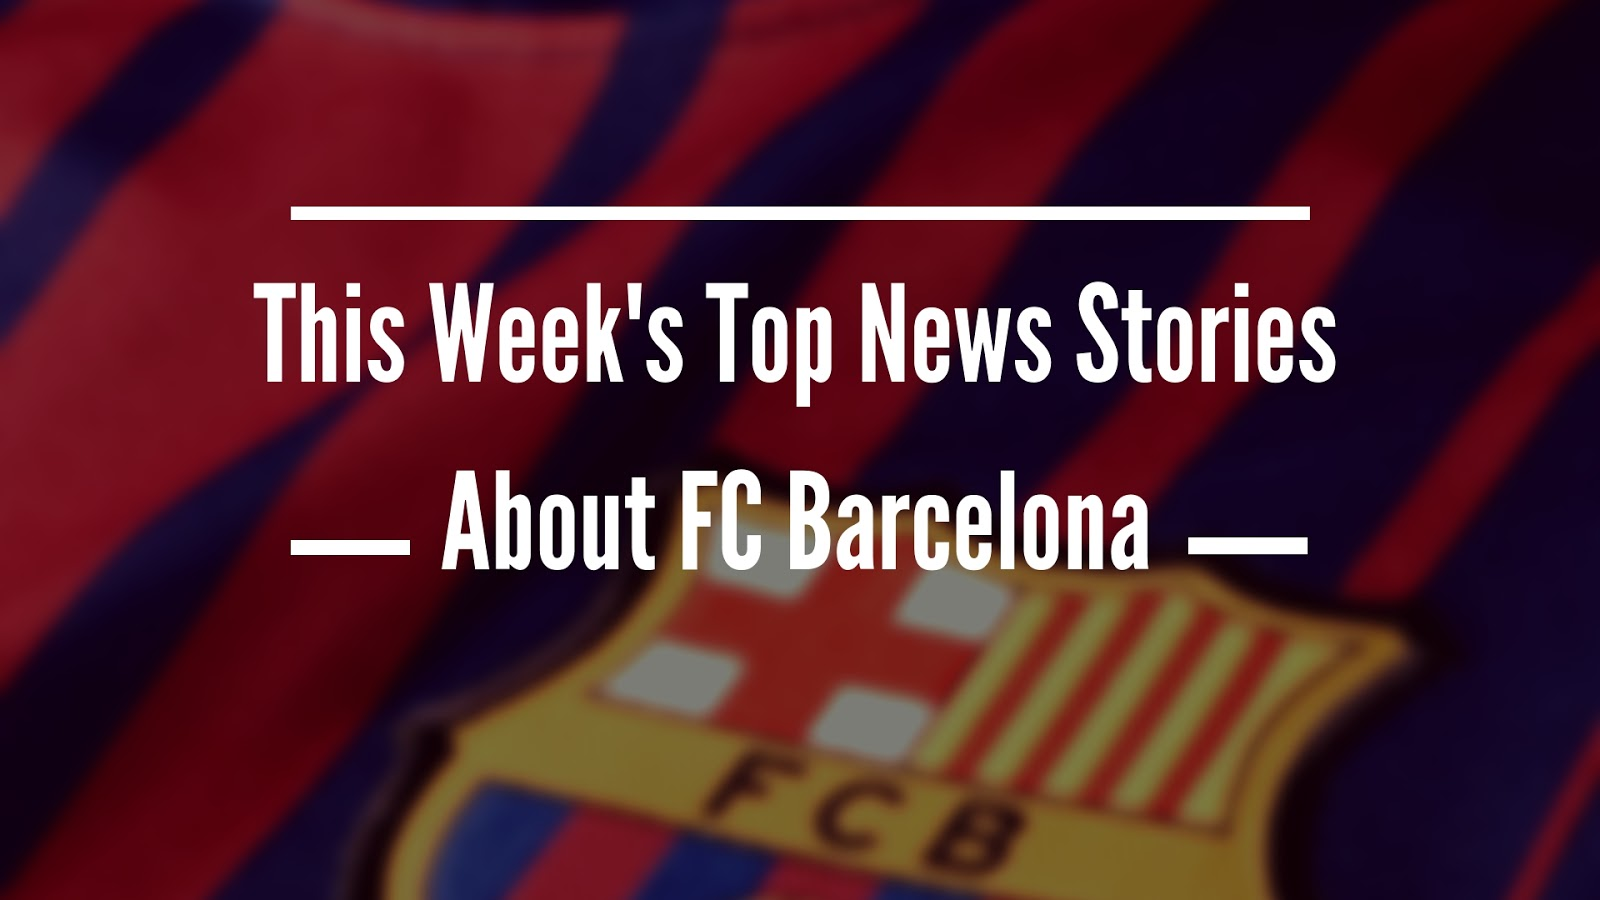 This Week's Top News Stories About FC Barcelona #FCBarcelona #Barca